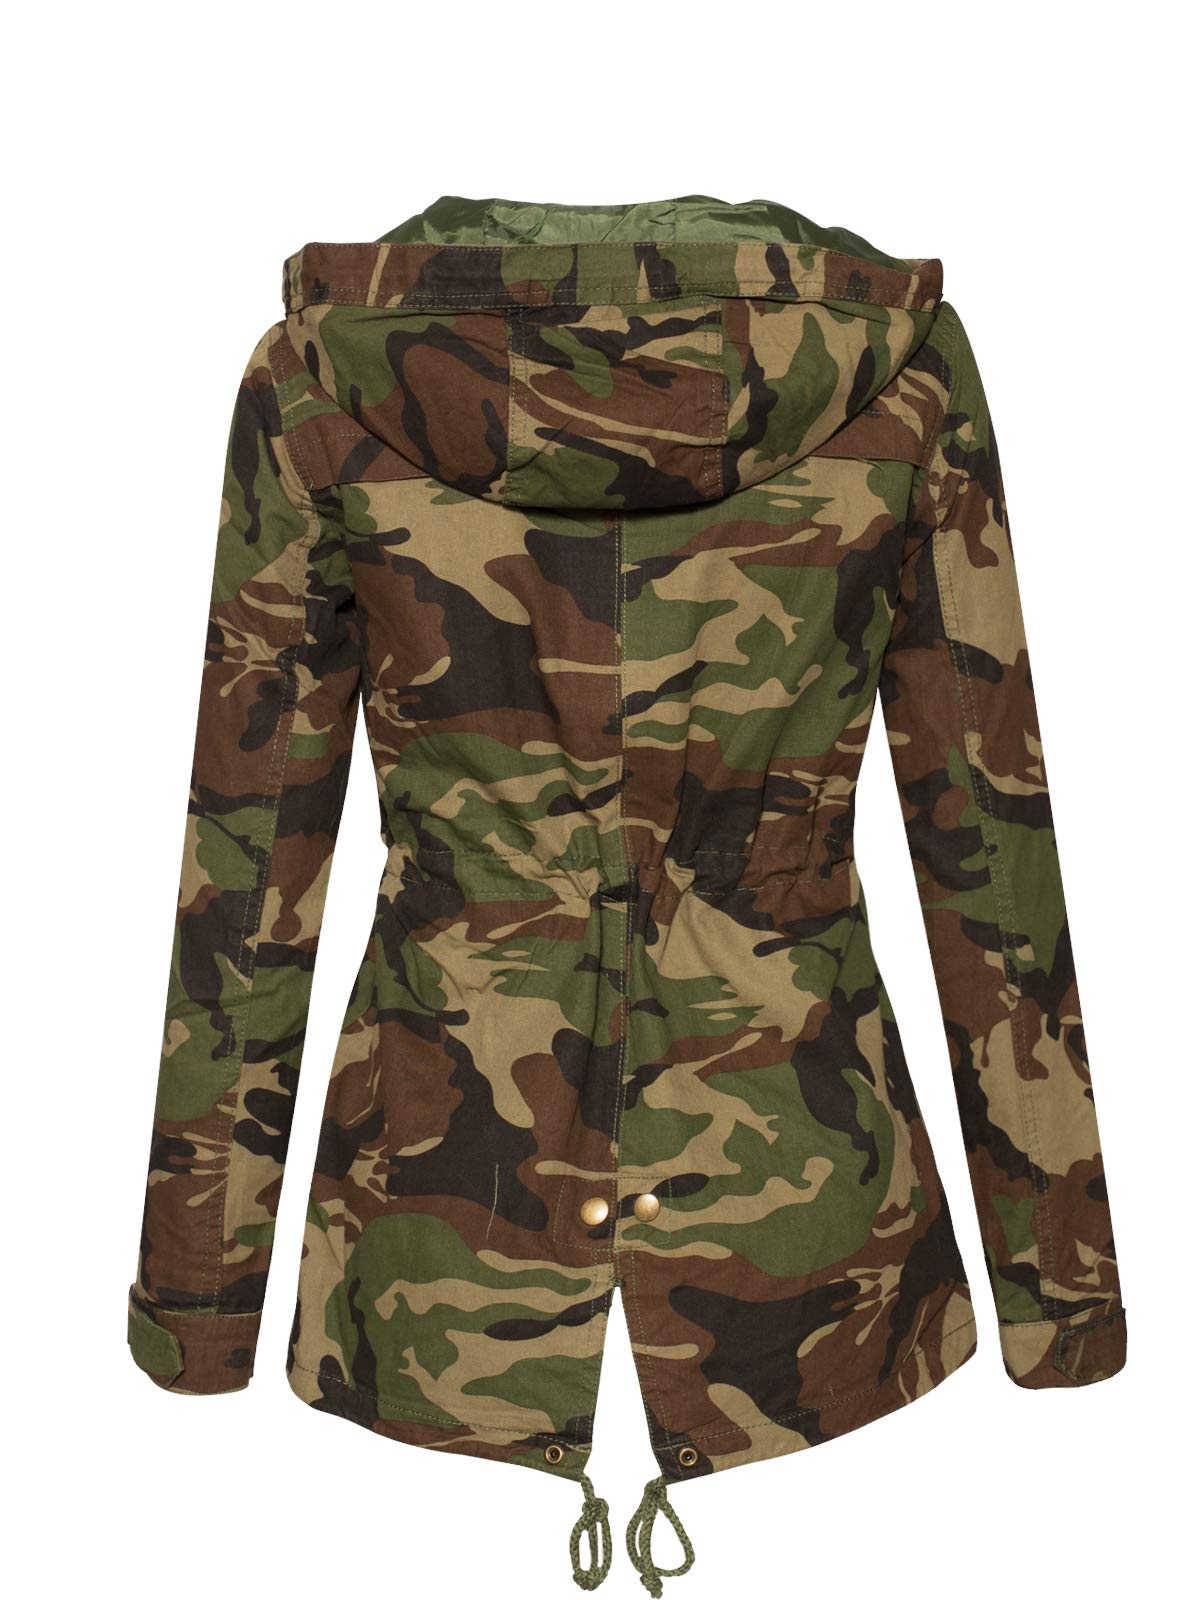 Instar Mode Women's Anorak Safari Hoodie Jacket up to Plus Size Olive Camo L